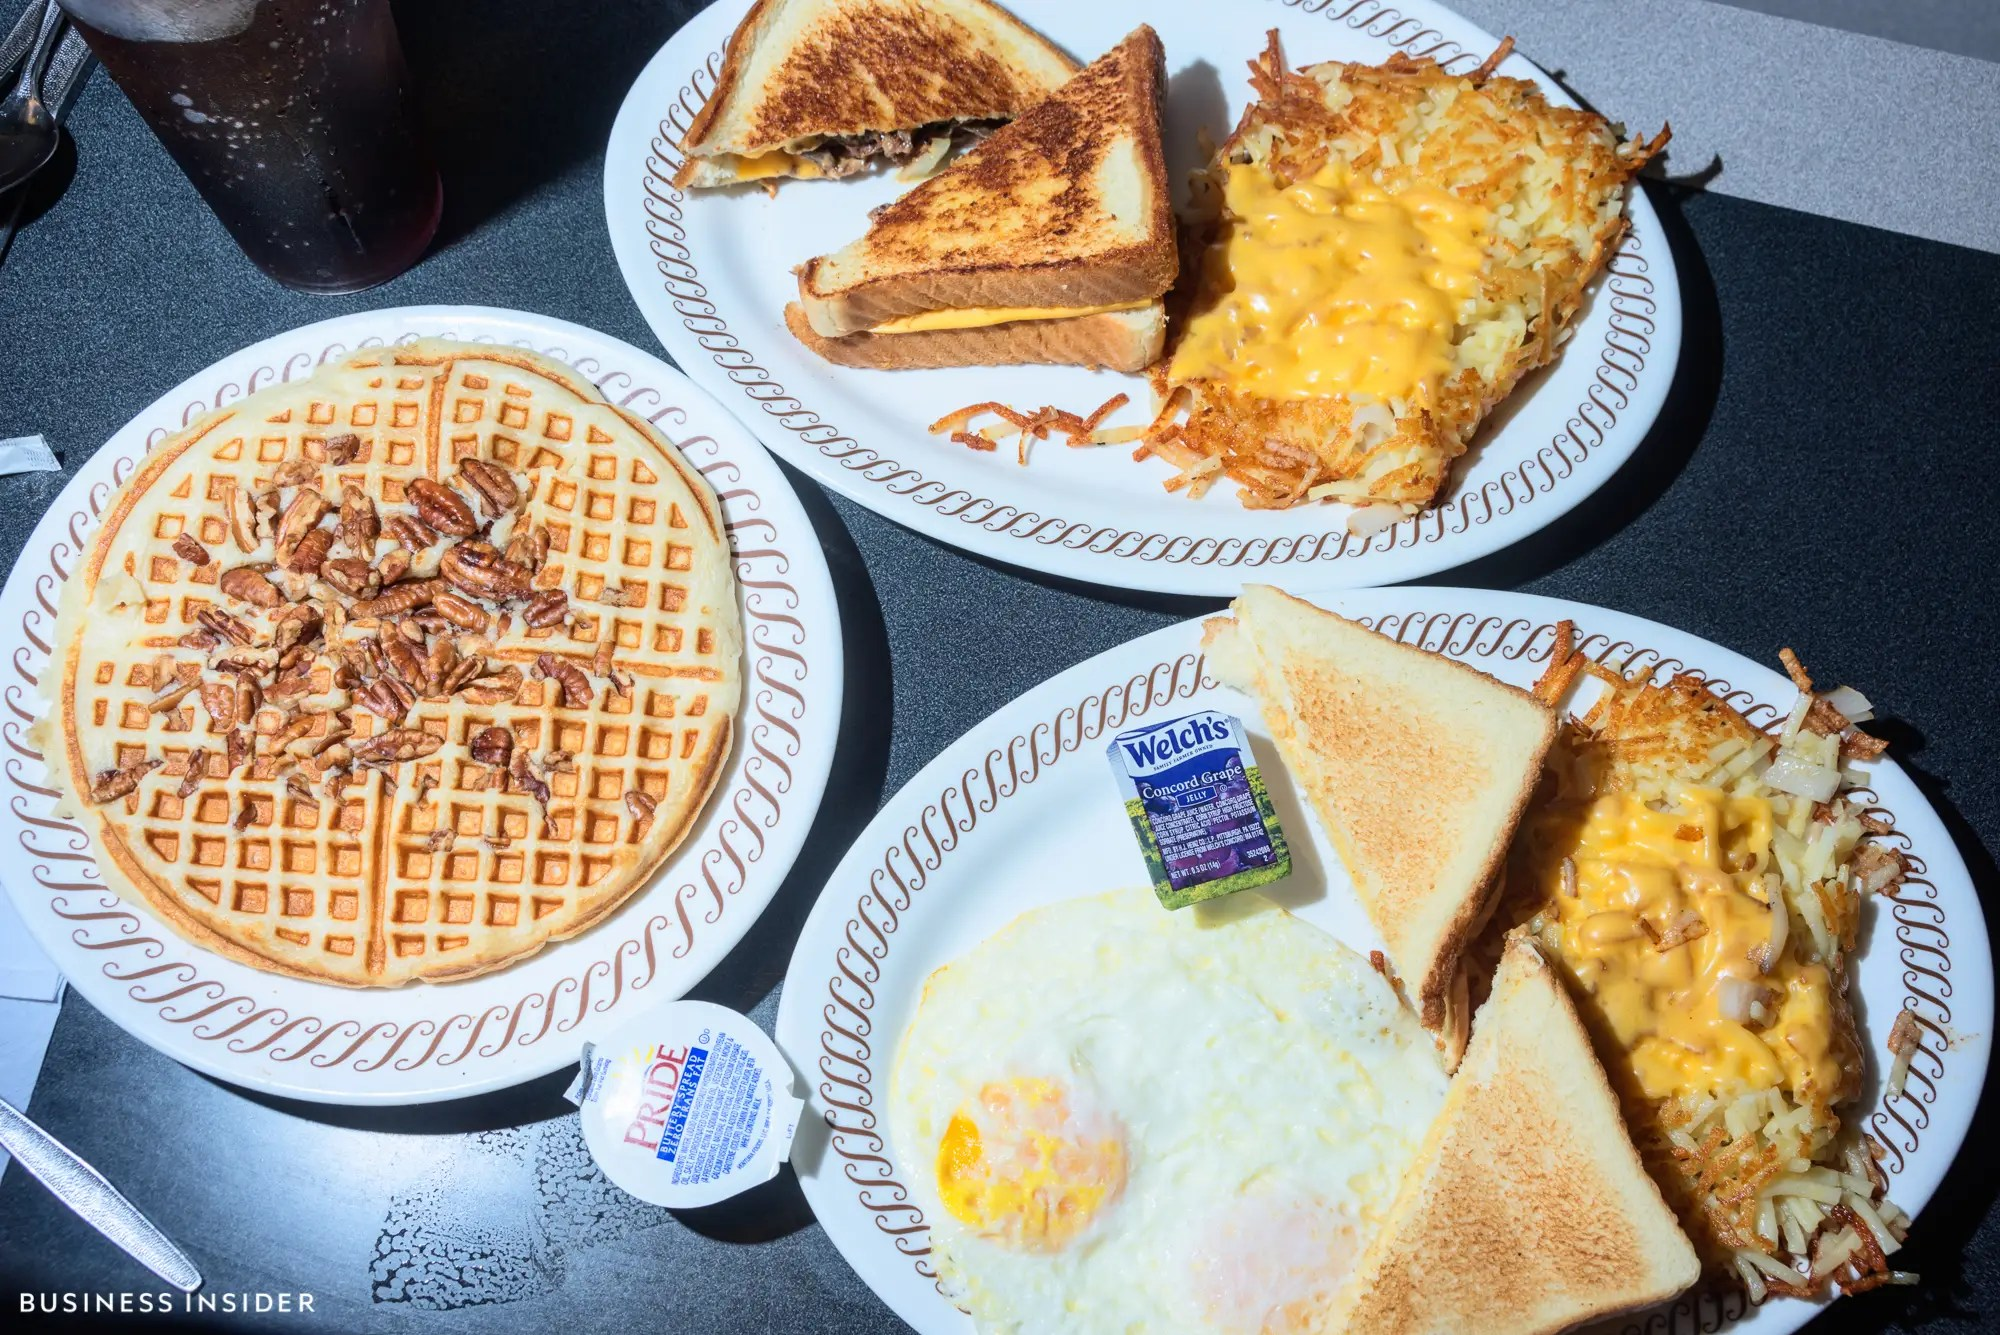 "Our order was a fair sampling of the menu: an ""All-Star Breakfast"" special, which includes a waffle with pecans, eggs, toast, hash browns, and a protein side, plus a steak melt with more hash browns on the side. Everything arrived lightning fast, despite our friendly waitress' banter."